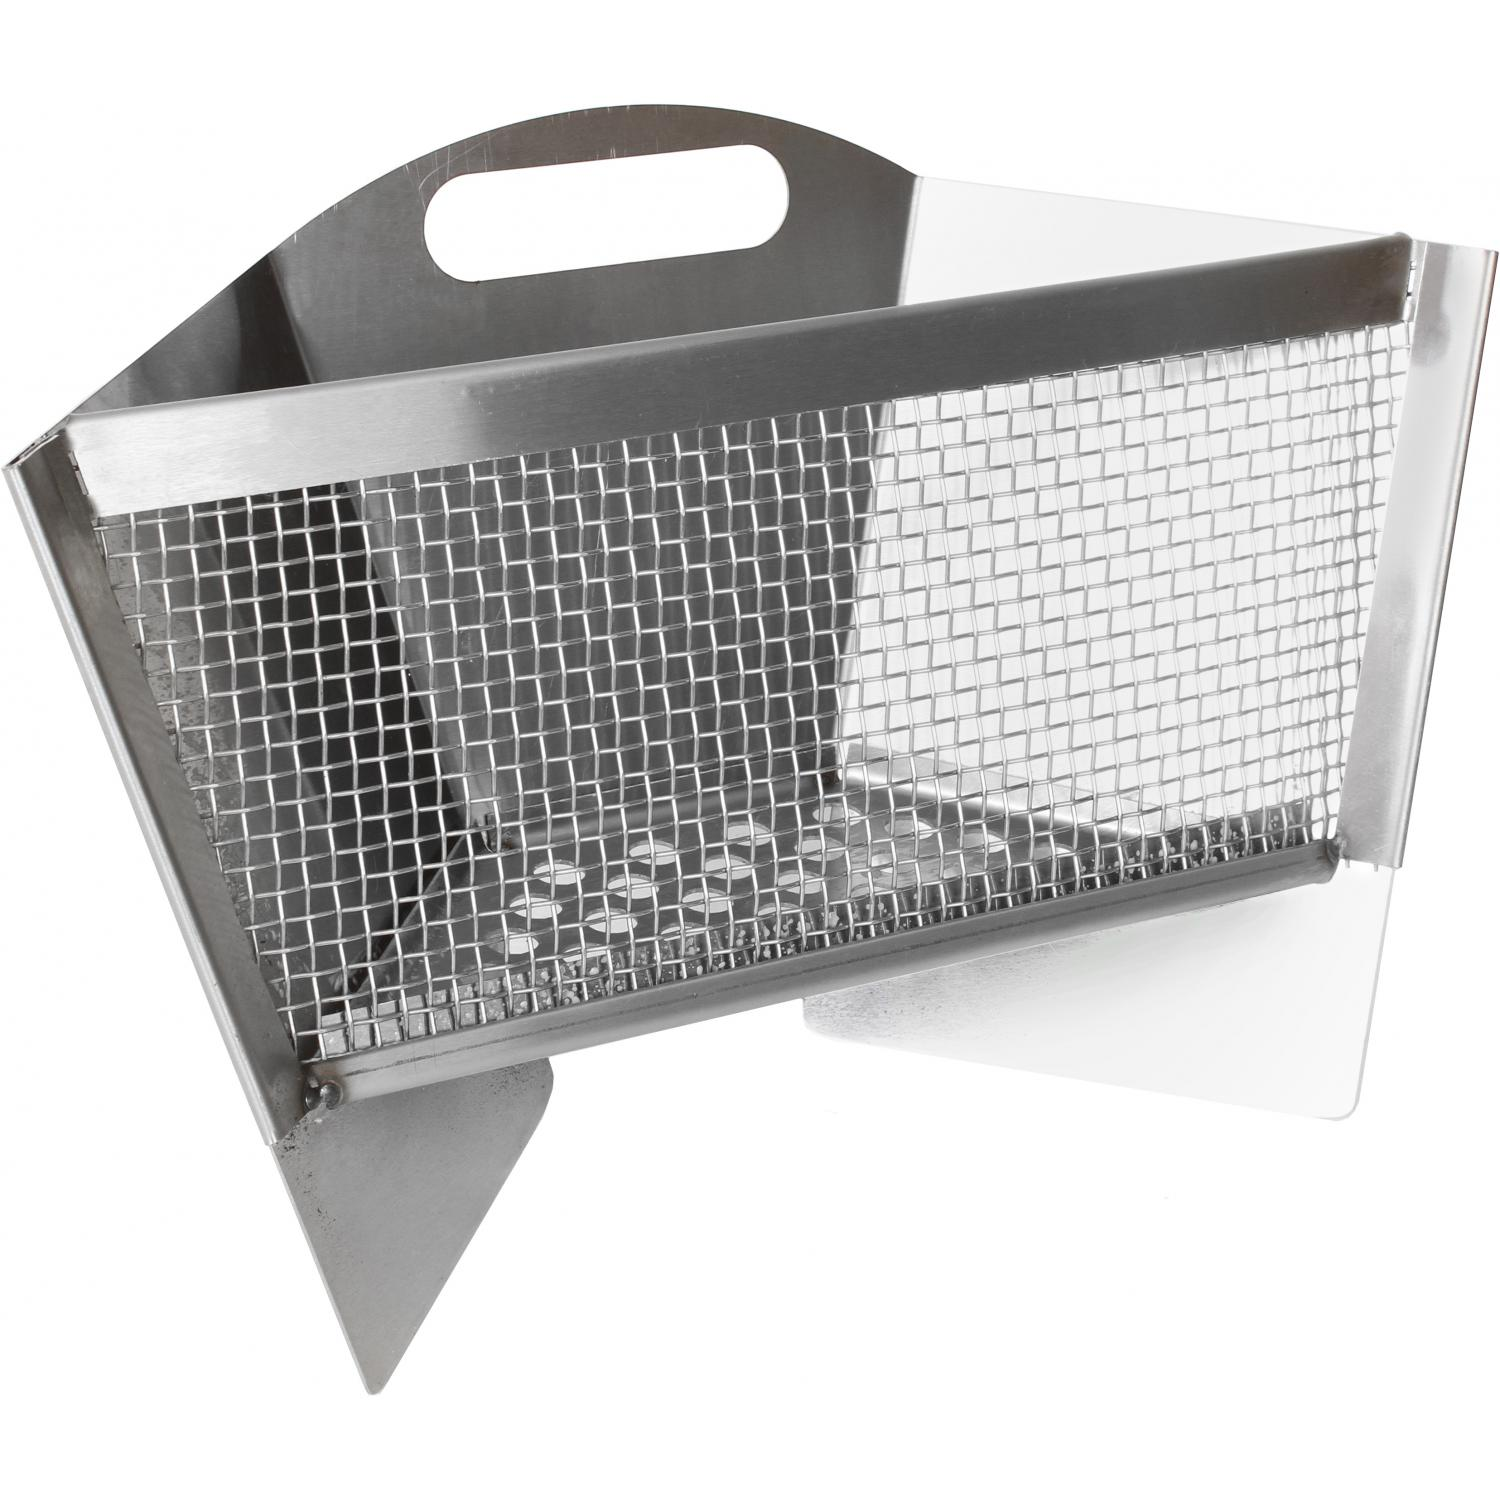 Thermashell Pro Stainless Steel Rotisserie Blaze Charcoal Basket 2881104